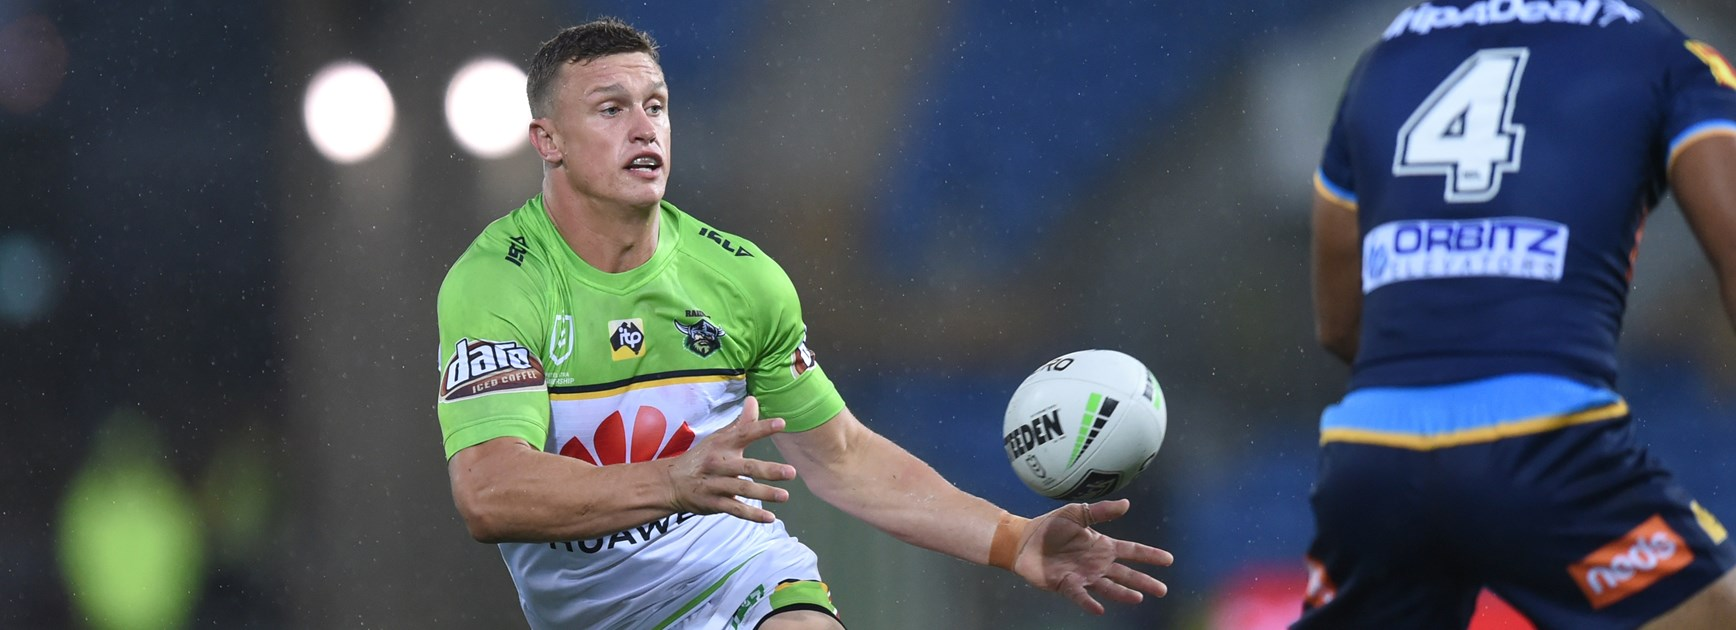 Wighton overcomes nerves to make seamless shift to halves